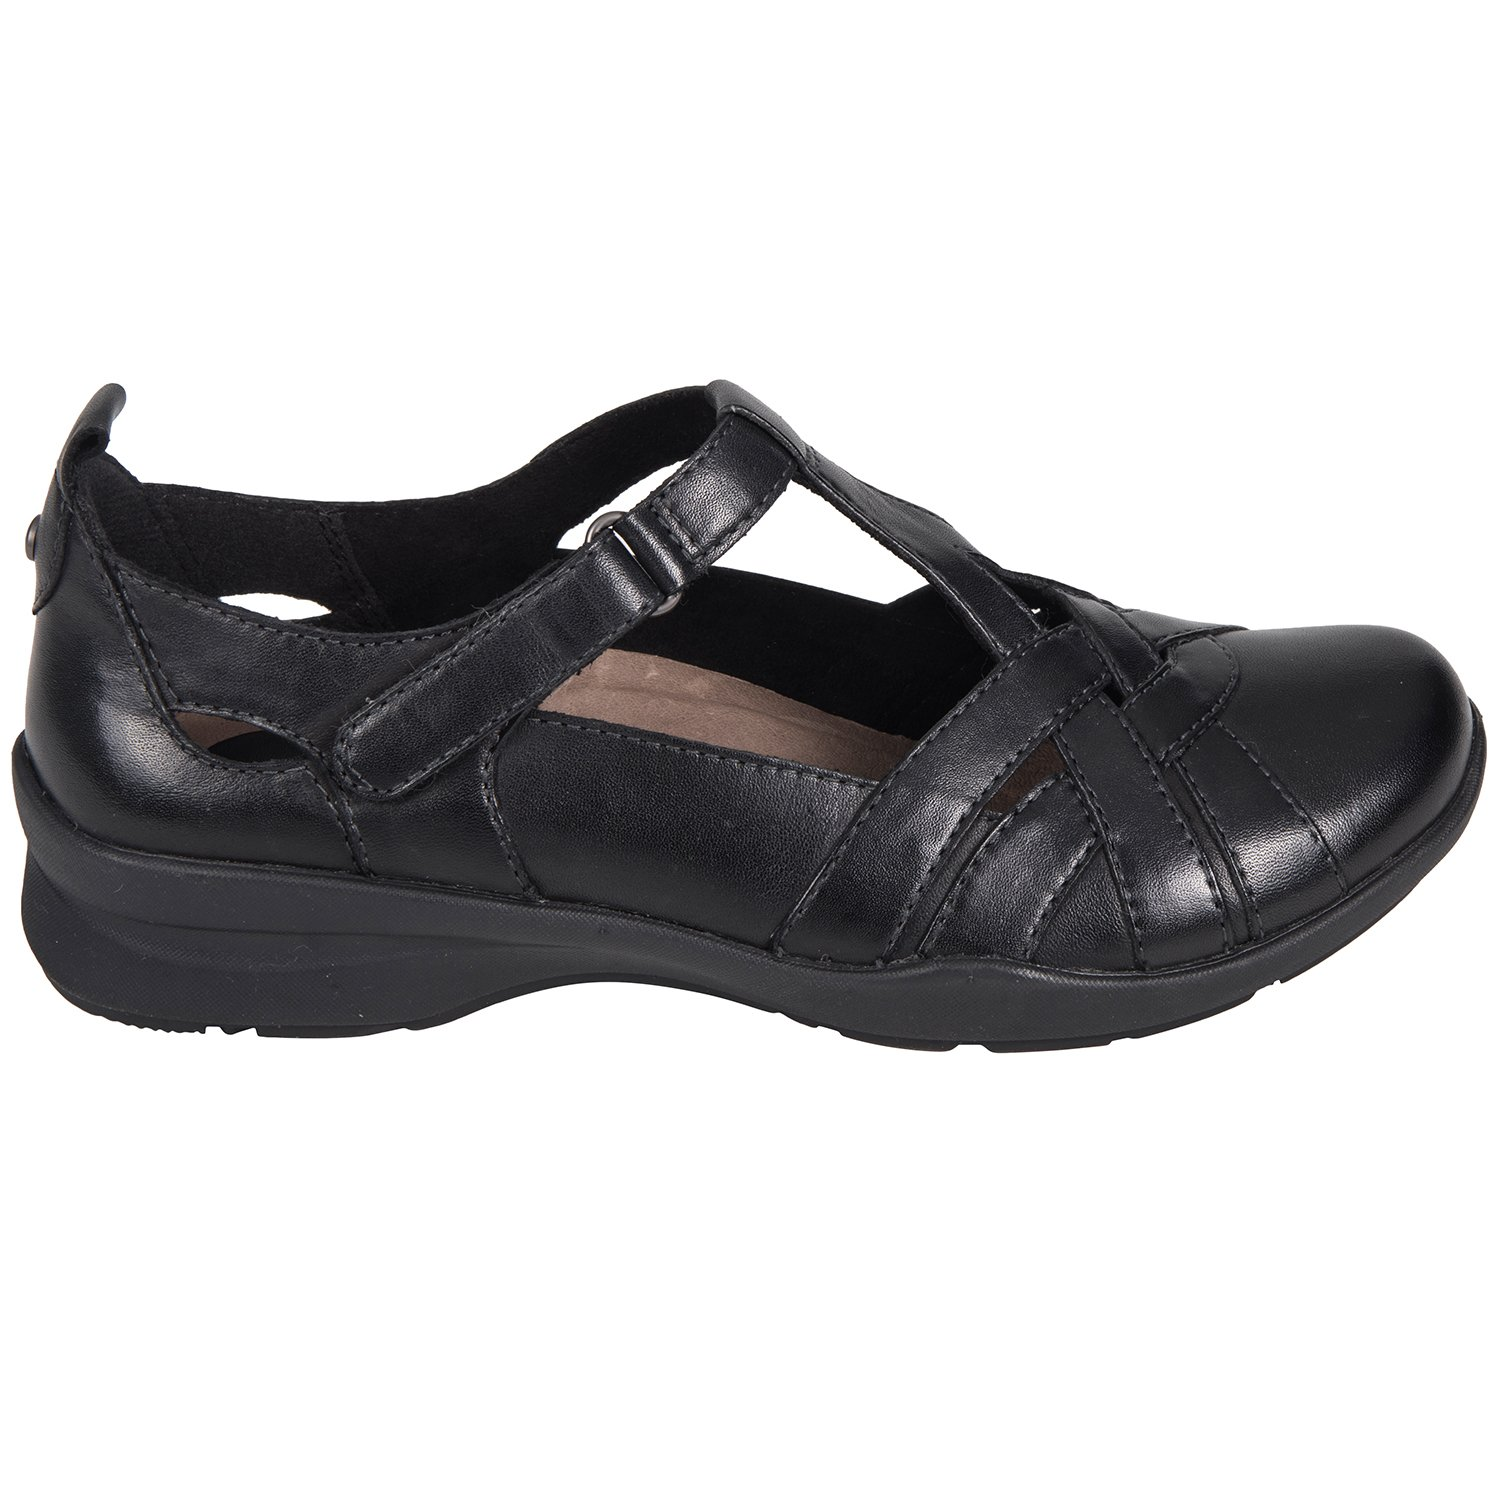 Earth Shoes B07962NLBF Ocelot B07962NLBF Shoes 9.5 B(M) US|Black 2bb036